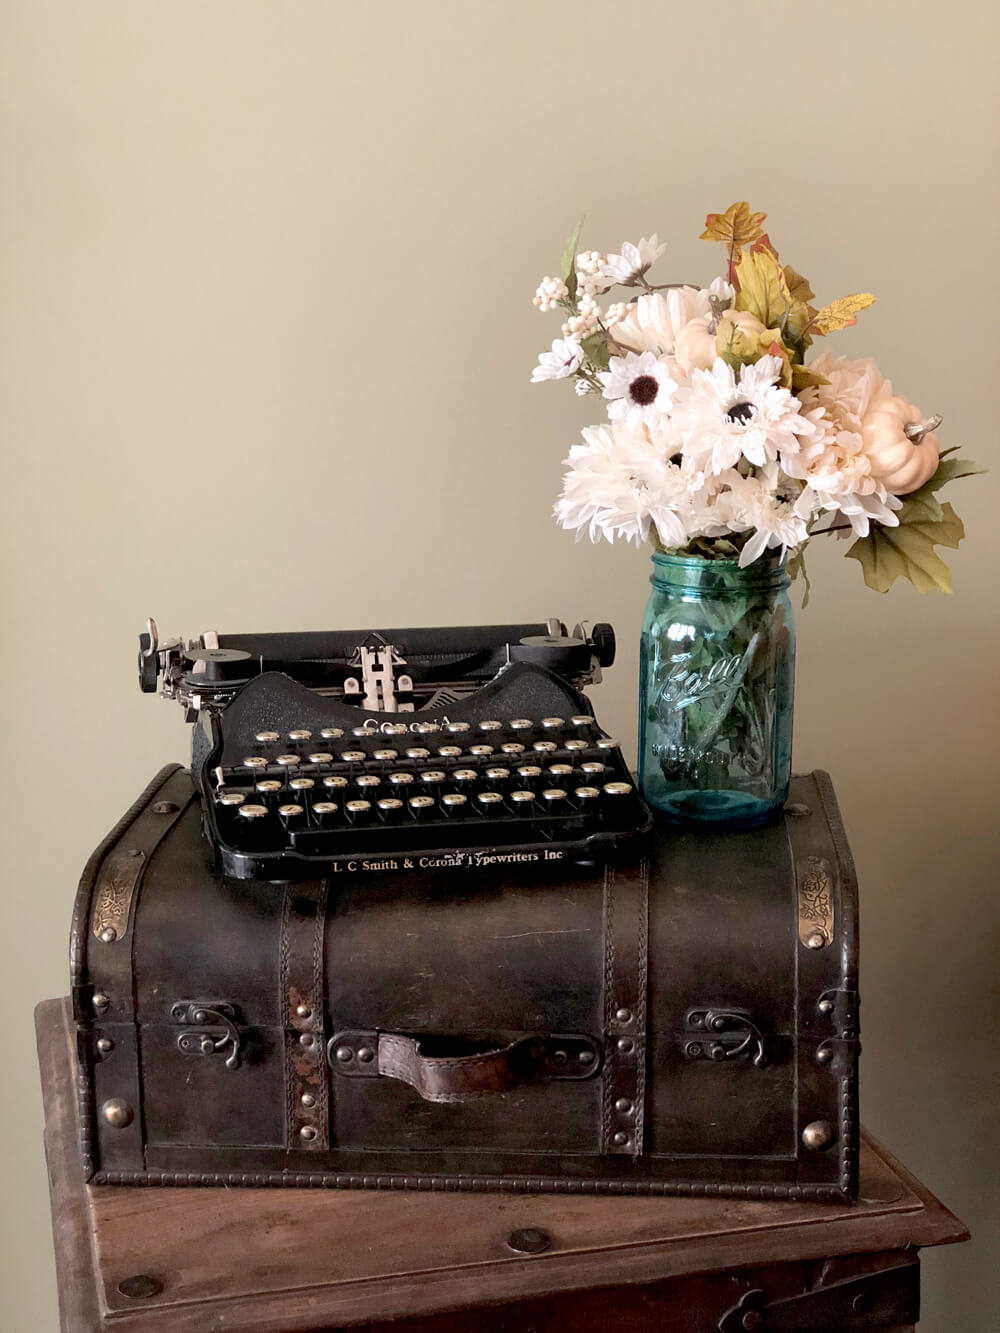 Vase of fall florals on suitcase with vintage typewriter for girls night harvest party decor ideas